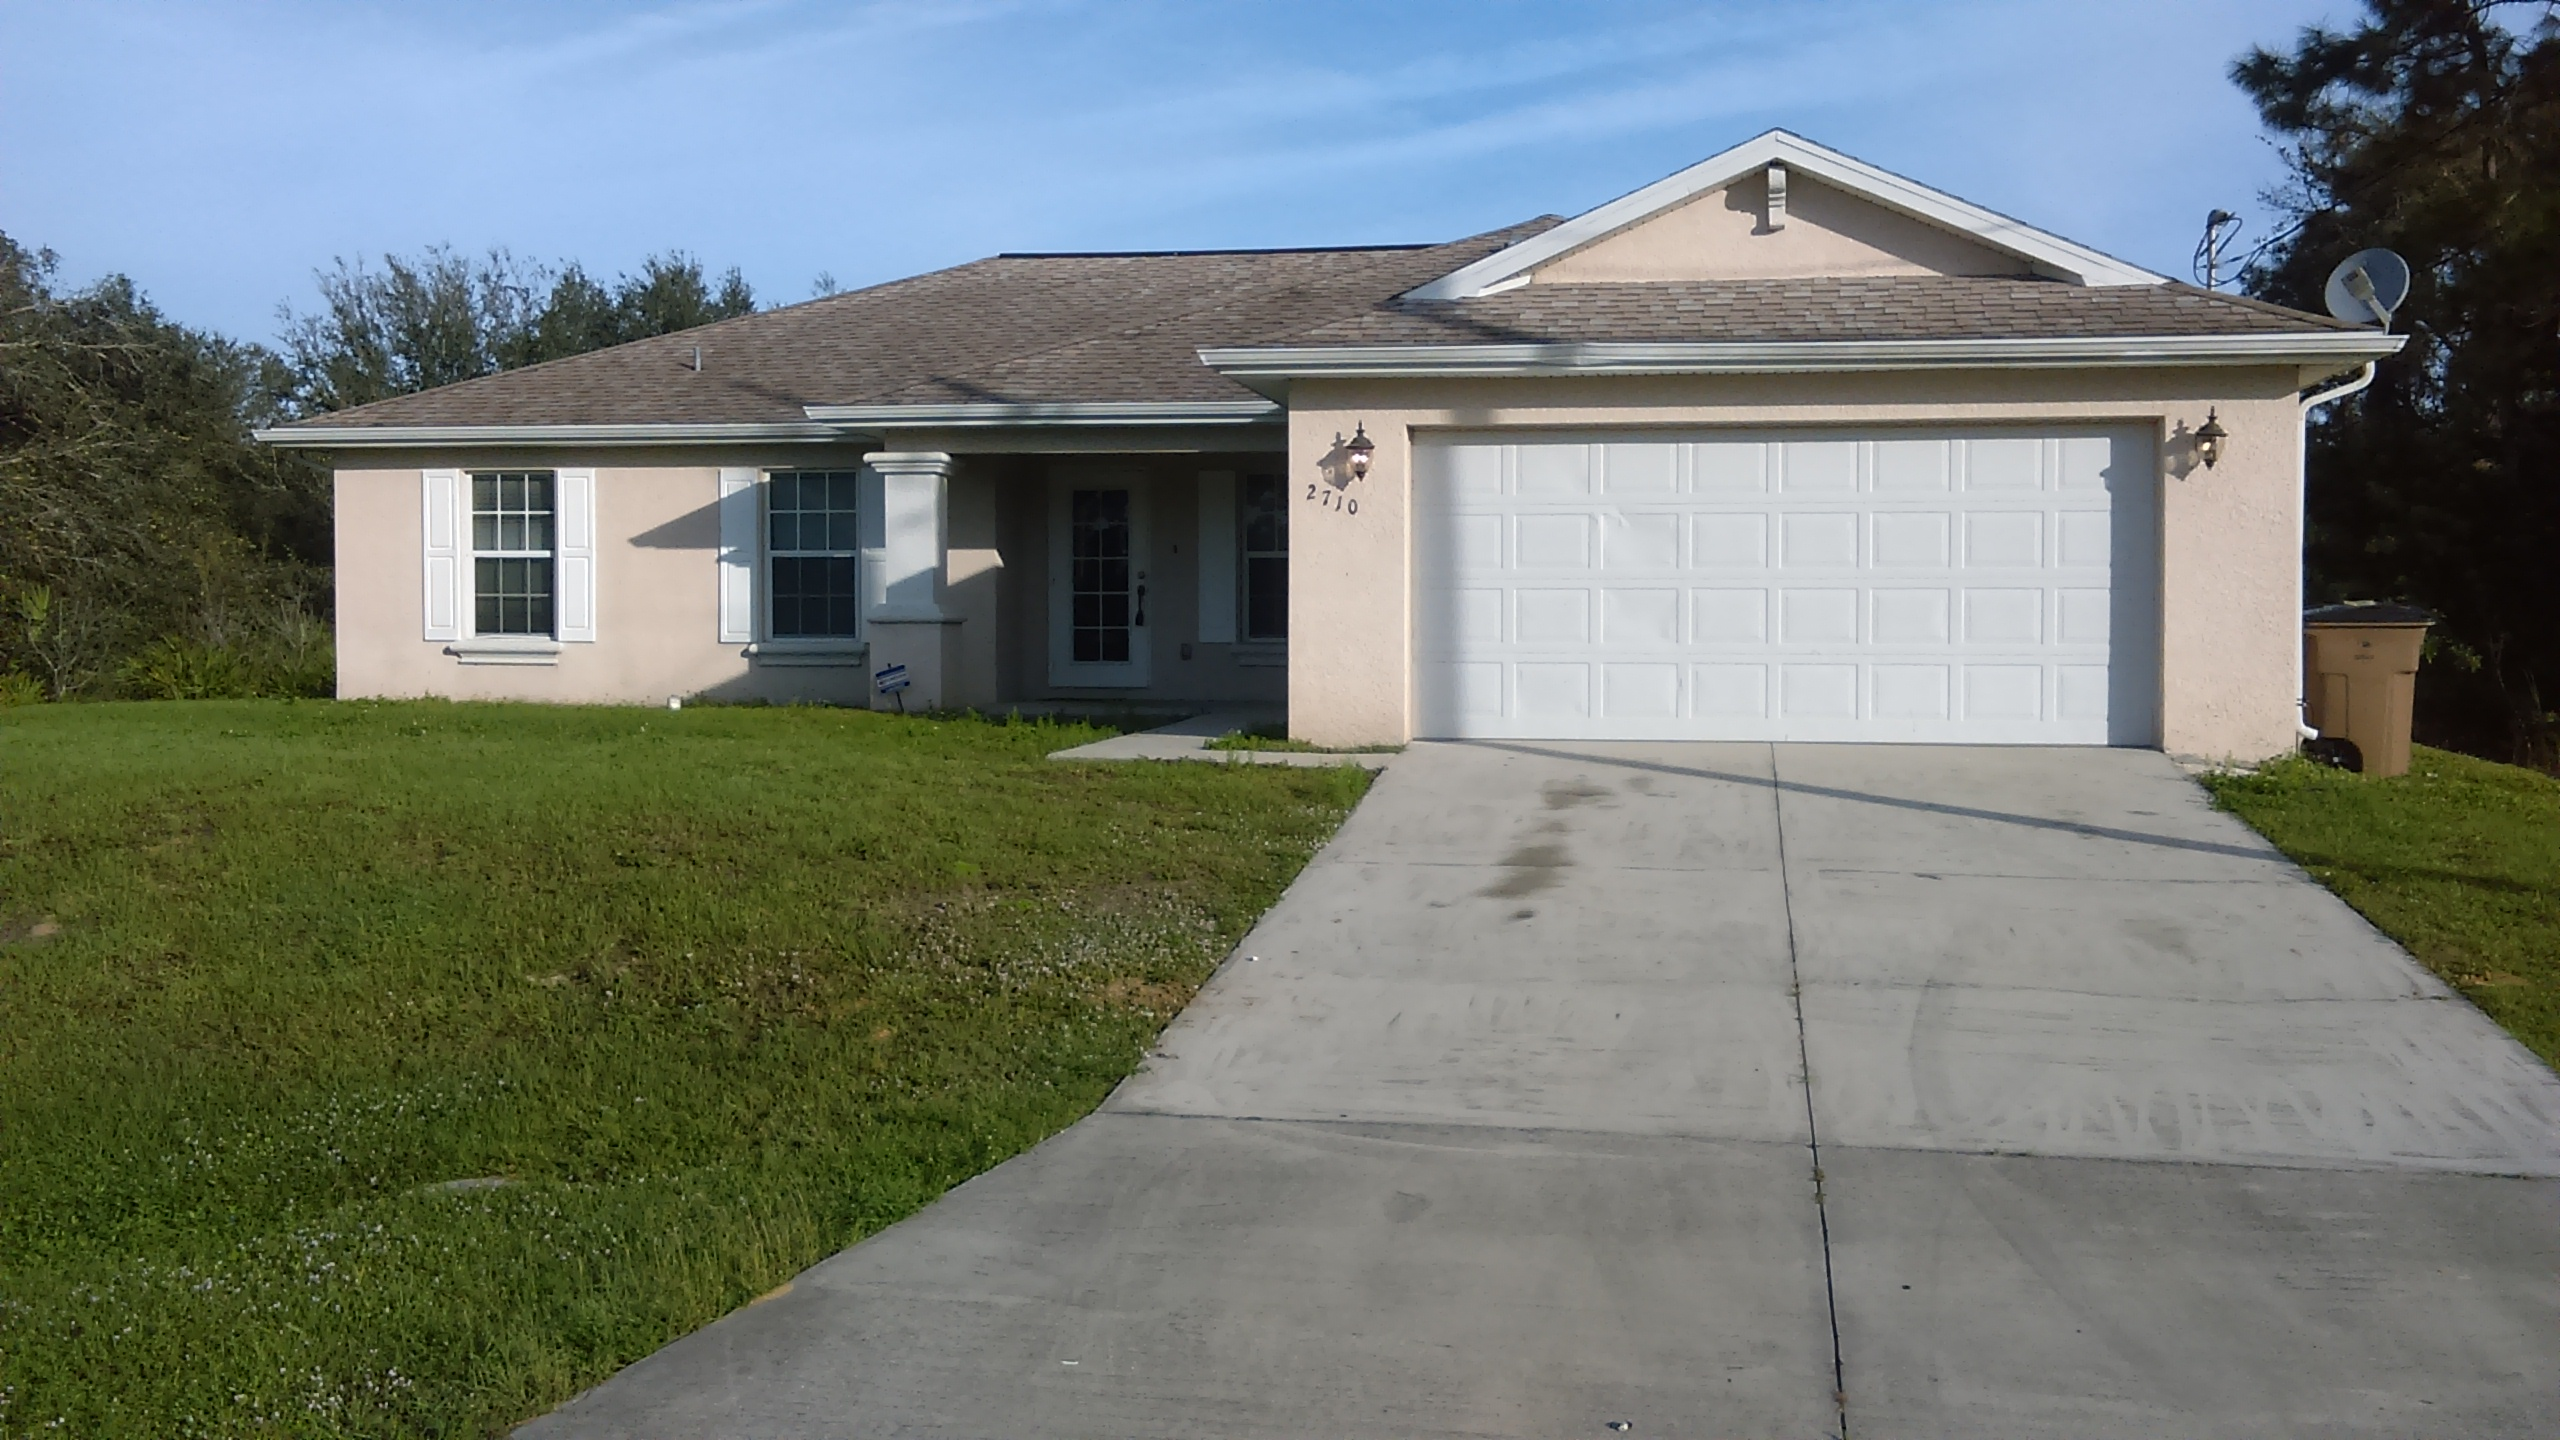 2710 52 St W – Lehigh Acres